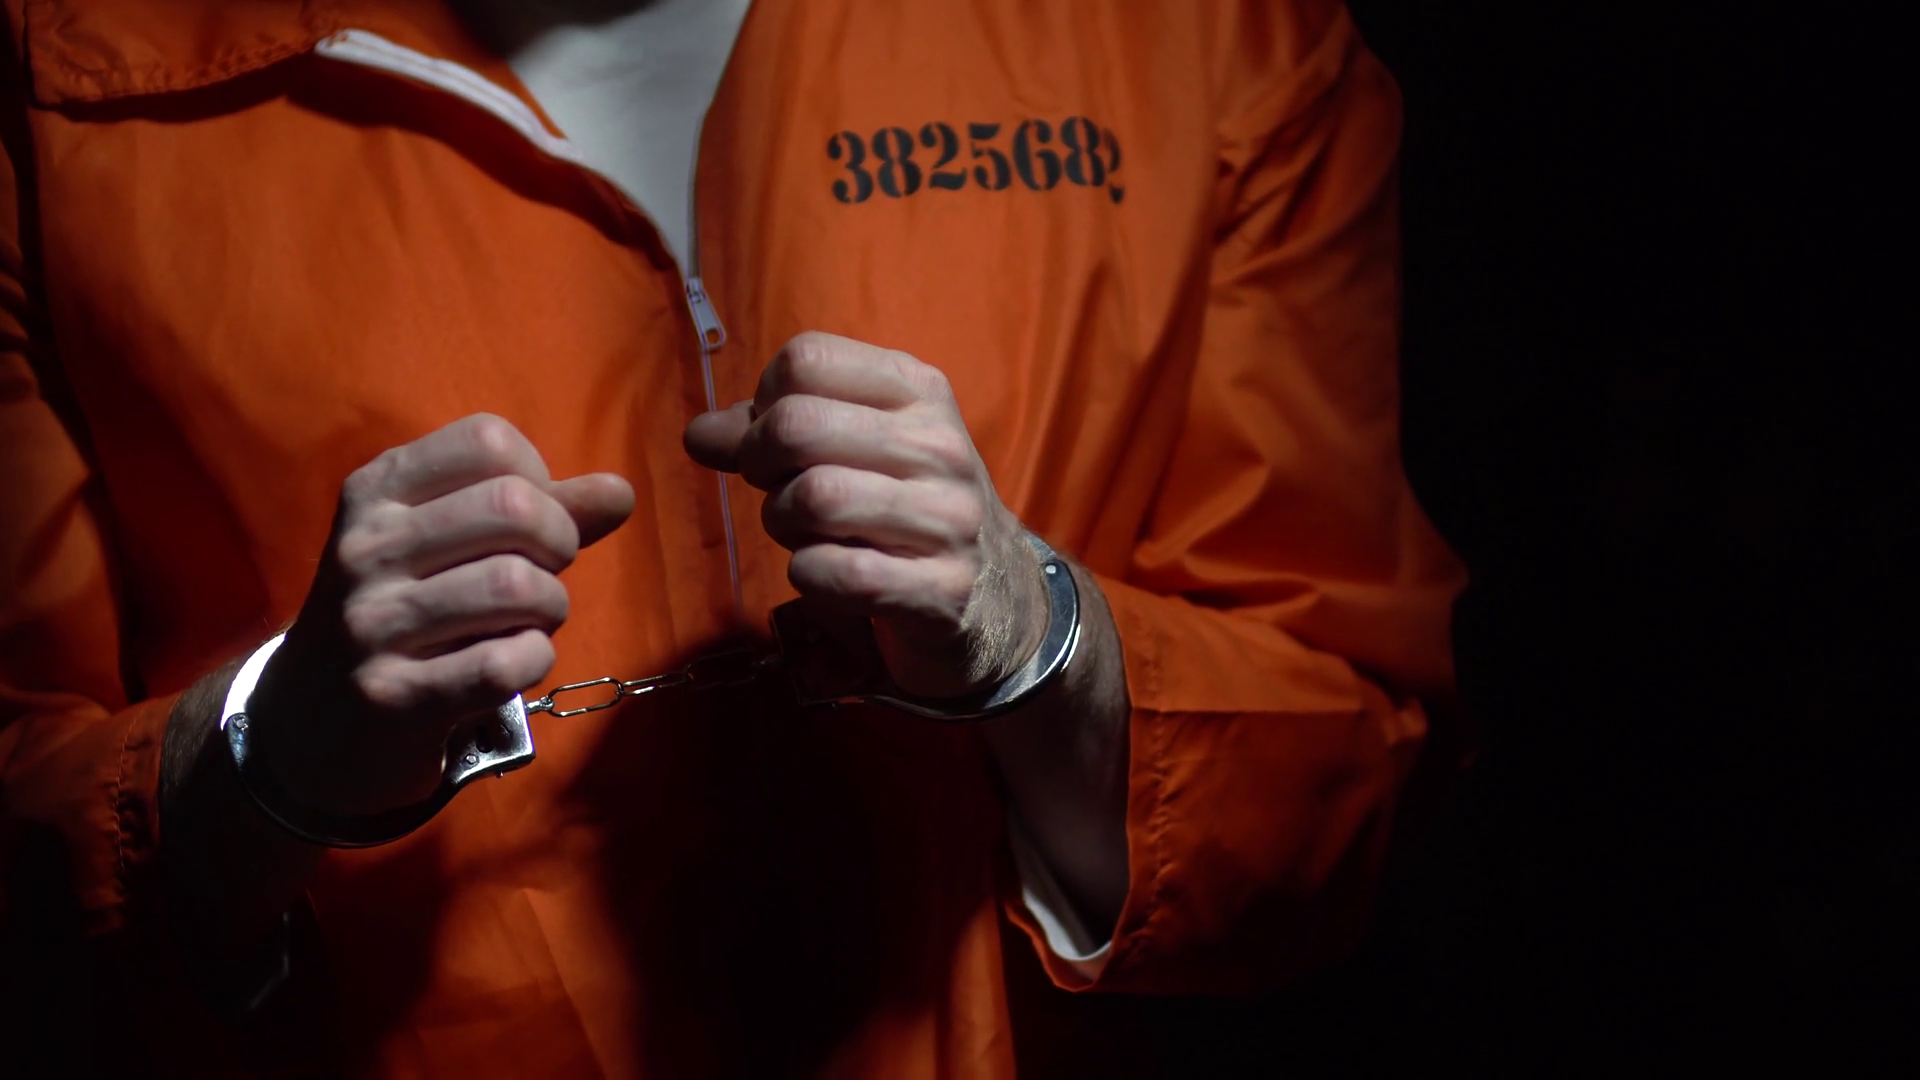 videoblocks-prison-convict-in-handcuffs-dark-at-night-in-cell-behind-bars-sad-depressing-alone-solitary-confinement-male-adult-prisoner-wearing-orange-jumpsuit-young-offender-serving-time-tr